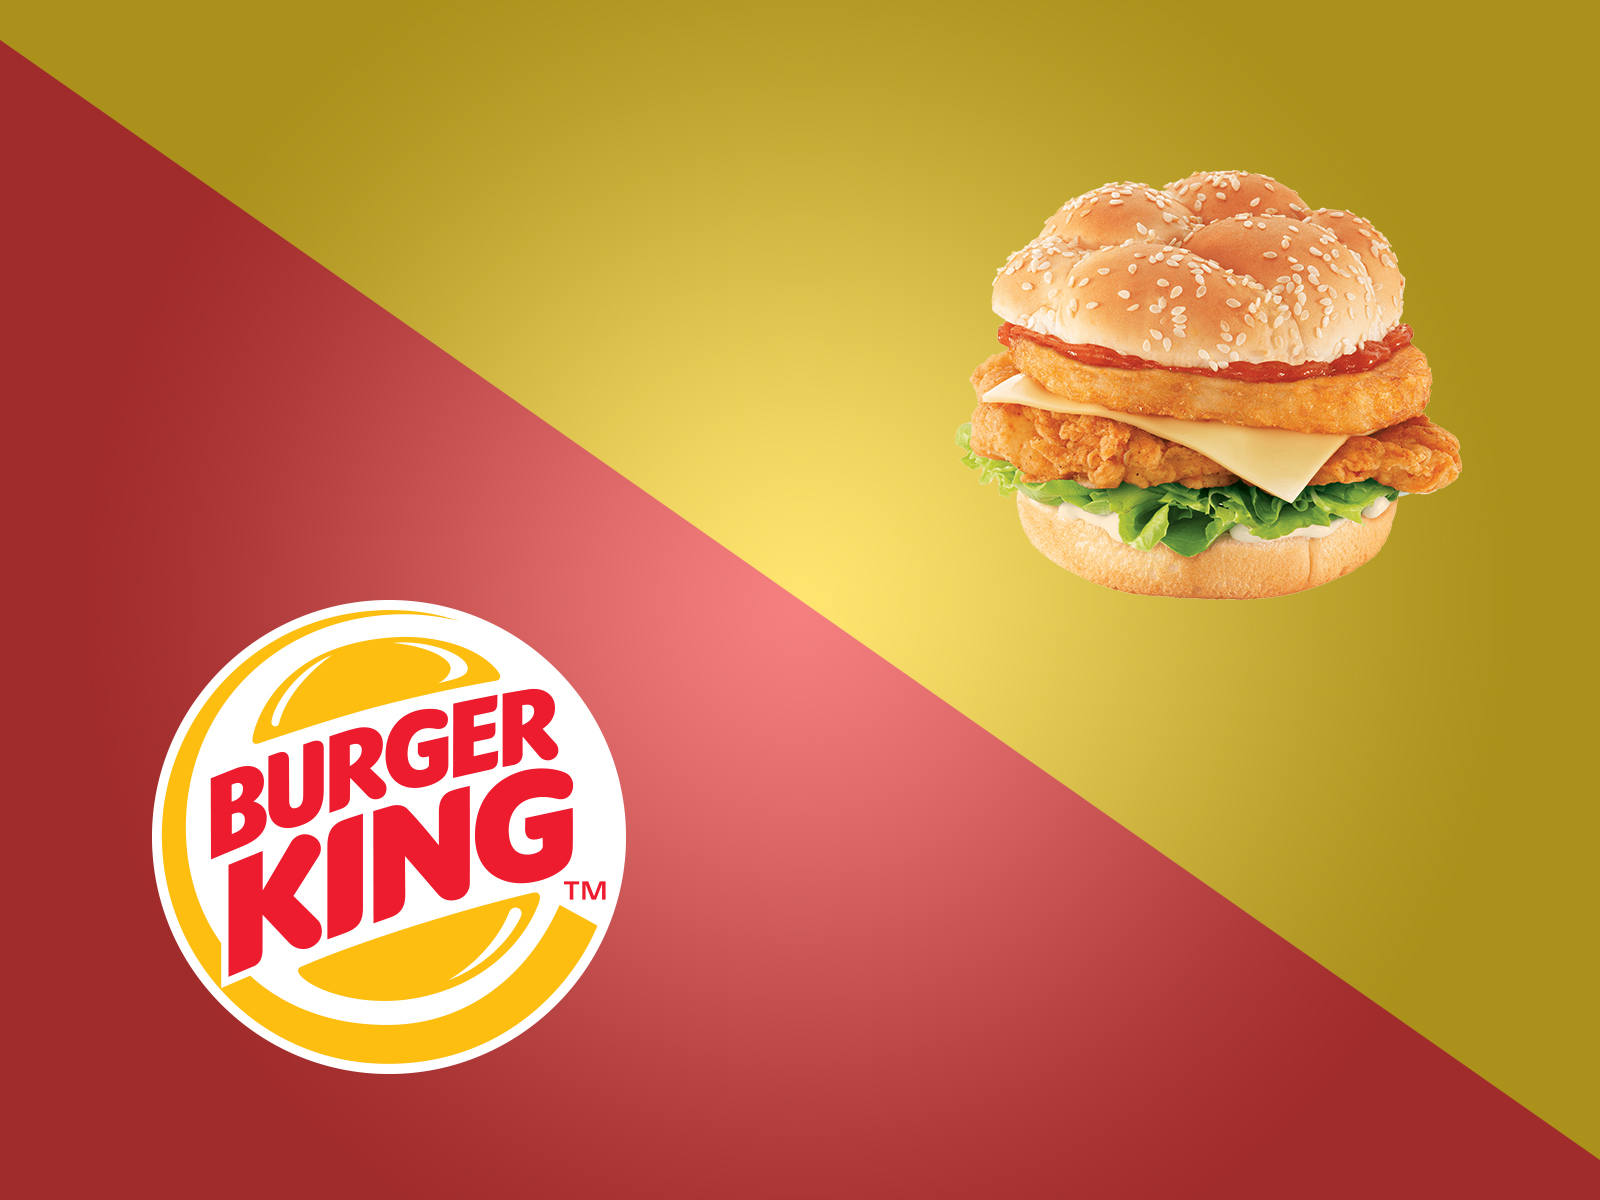 Burger king brand ppt backgrounds foods drinks templates ppt burger king brand powerpoint templates toneelgroepblik Choice Image